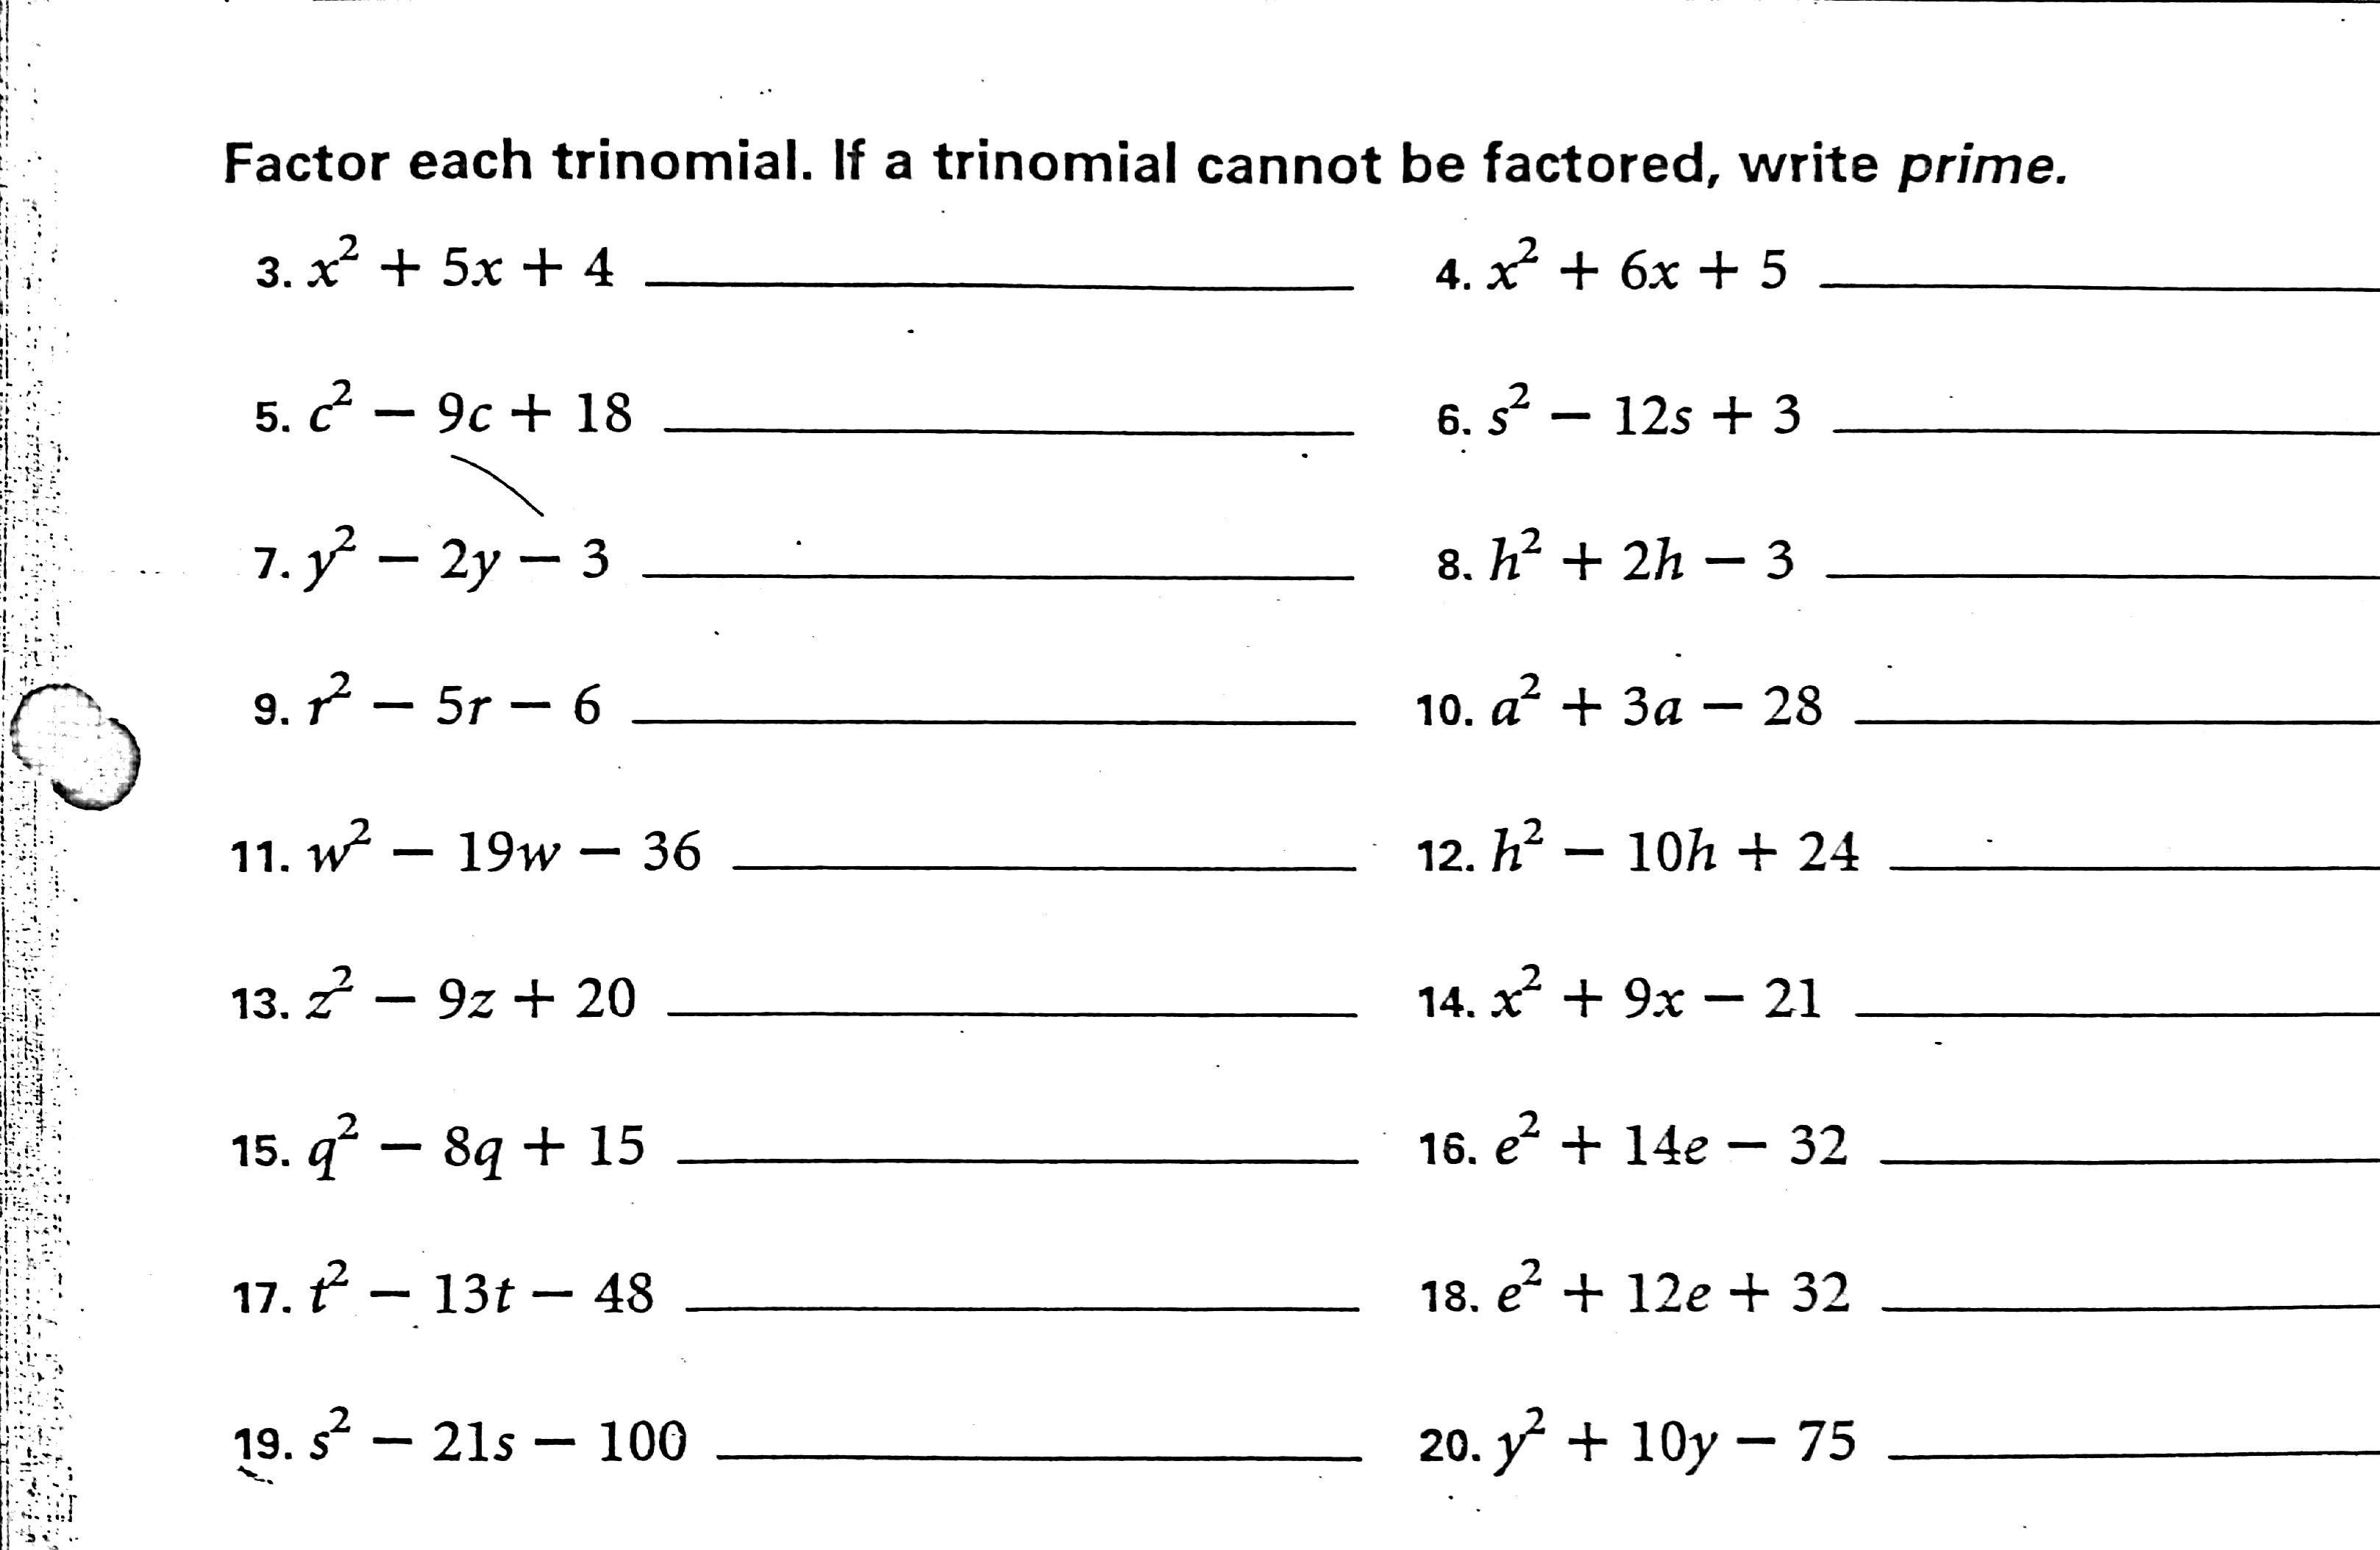 Weirdmailus  Nice Factoring Worksheet  Delwfgcom With Interesting Factoring Polynomials Practice Worksheet With Answers Coterraneo With Beauteous All About Me Worksheet For Kids Also Building Sentences Worksheet In Addition Subtracting With Borrowing Worksheets And Geometry Similarity Worksheet As Well As Finding Mean Worksheets Additionally Adverbial Clause Worksheet From Delwfgcom With Weirdmailus  Interesting Factoring Worksheet  Delwfgcom With Beauteous Factoring Polynomials Practice Worksheet With Answers Coterraneo And Nice All About Me Worksheet For Kids Also Building Sentences Worksheet In Addition Subtracting With Borrowing Worksheets From Delwfgcom